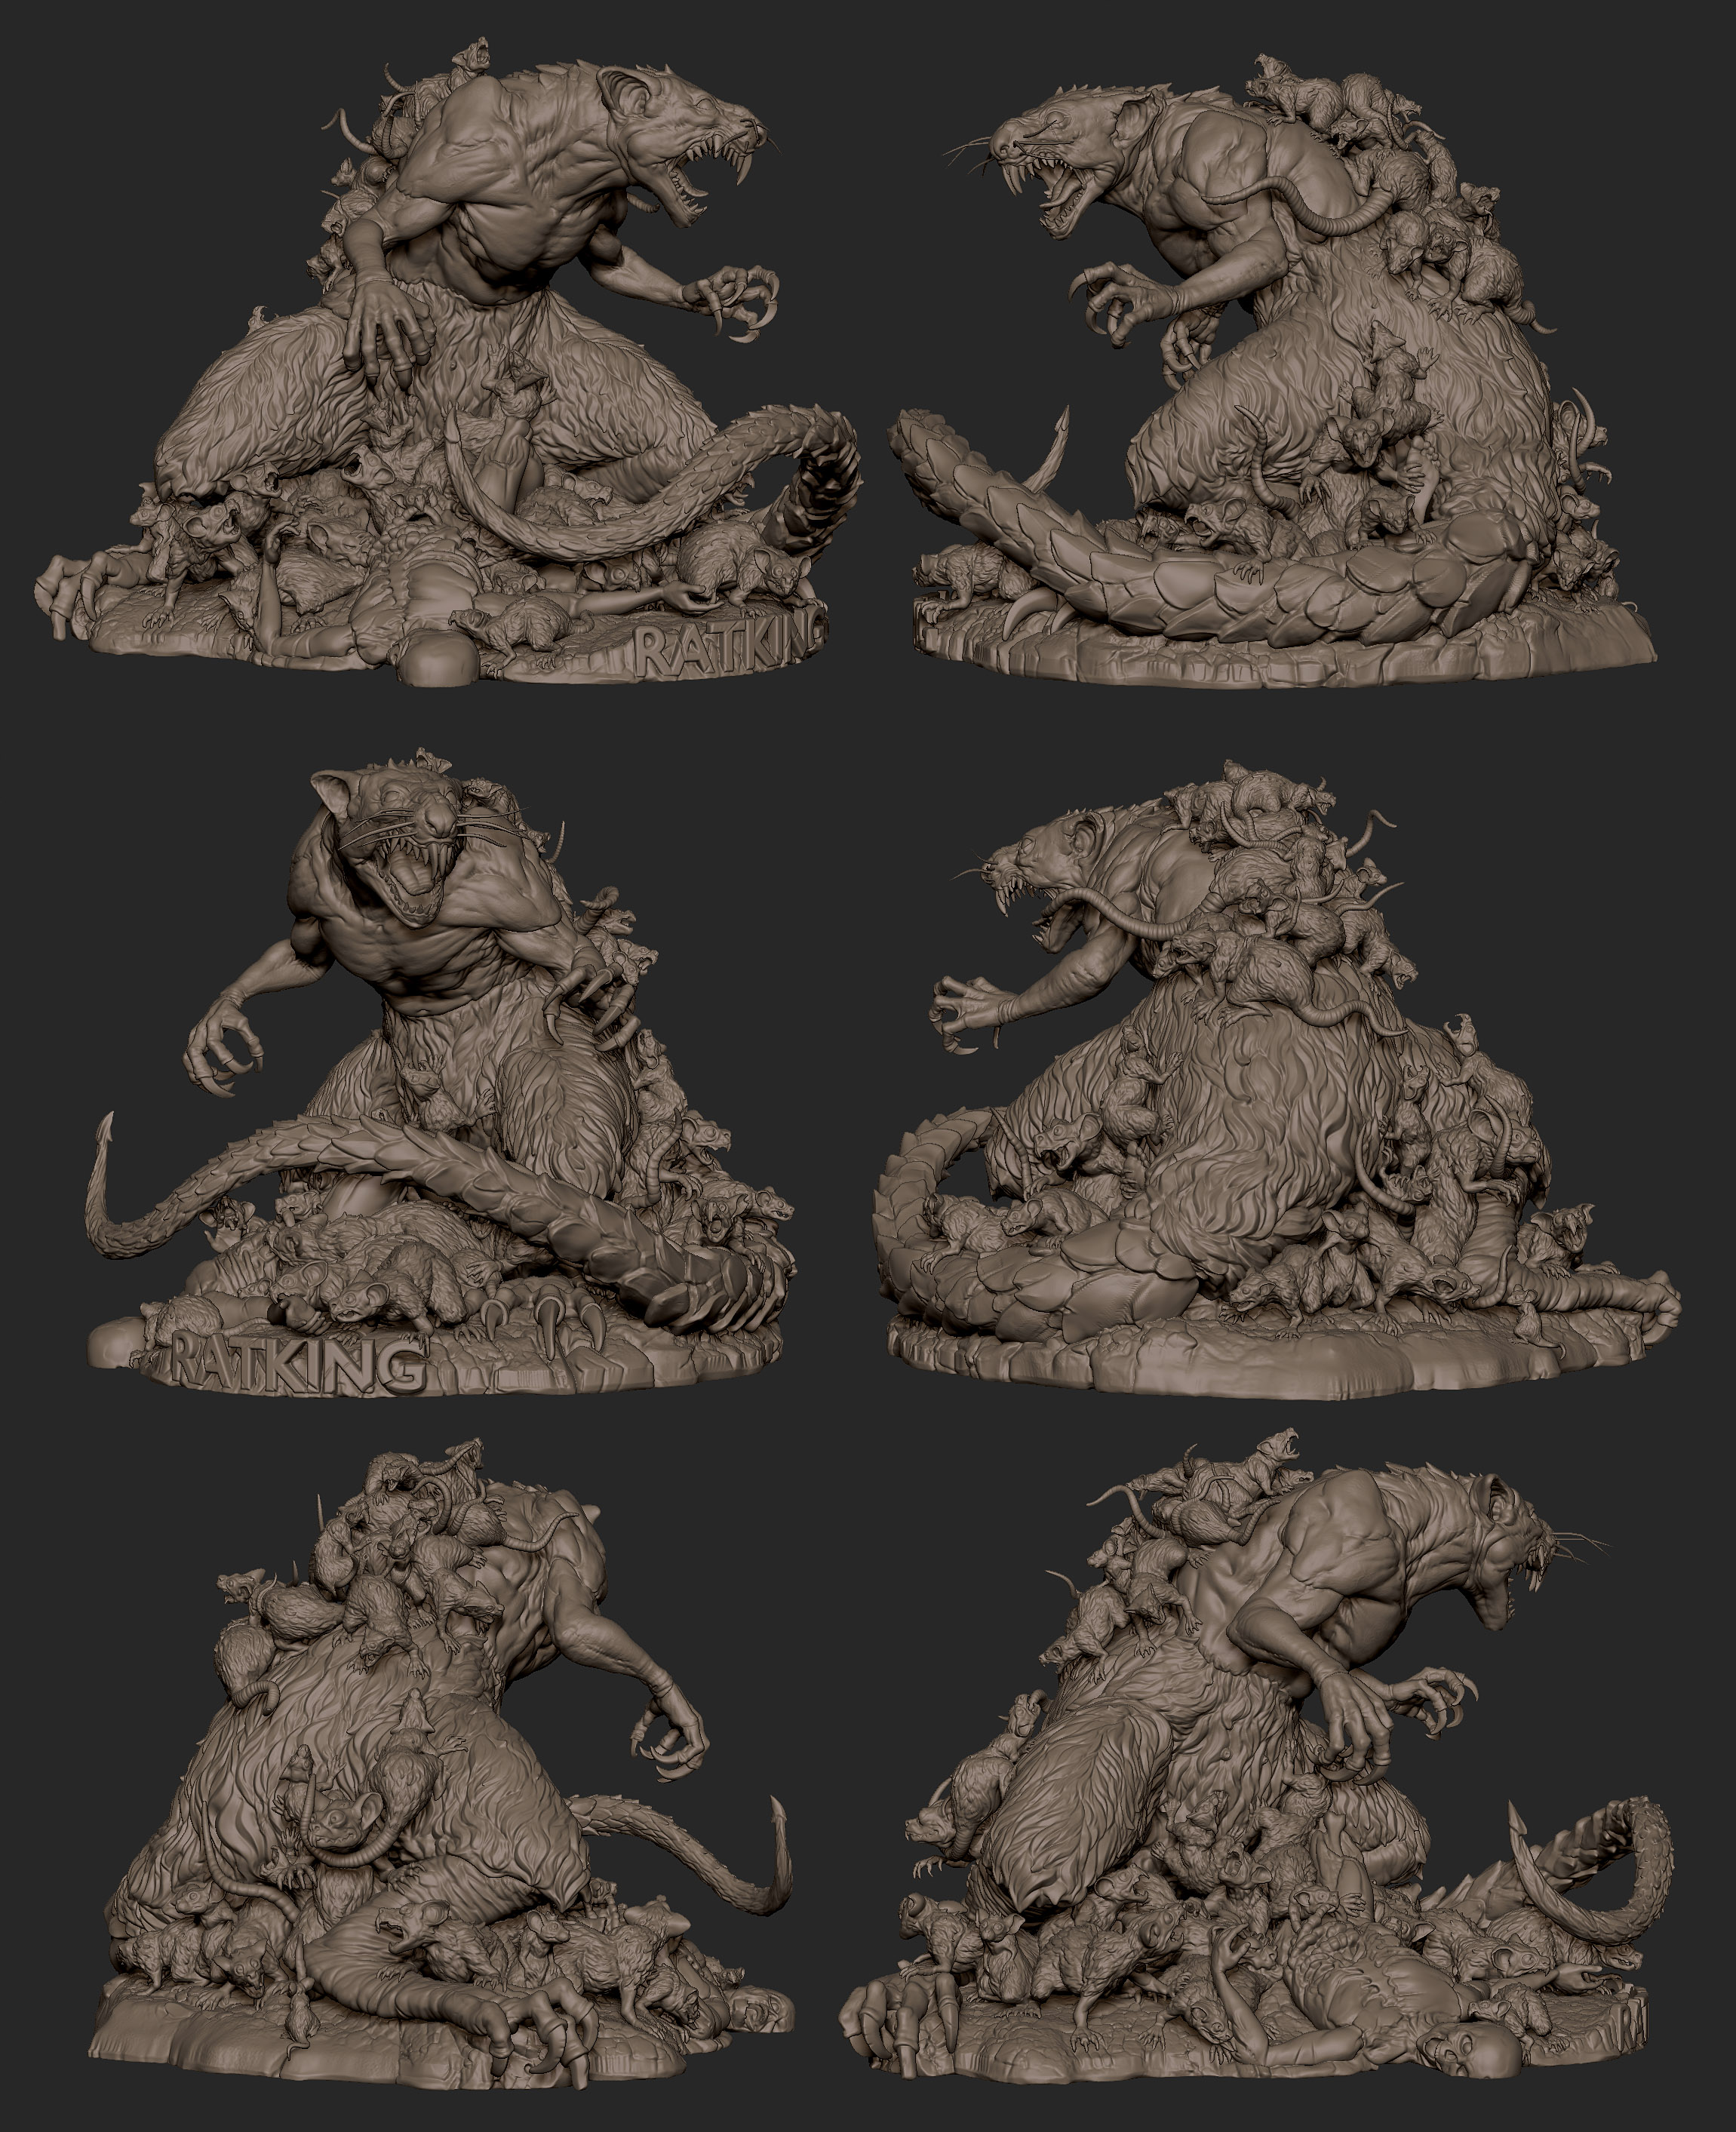 2019.09.29  Giant Rat sculpt for 3d print based on art from Russell Dongjun Lu